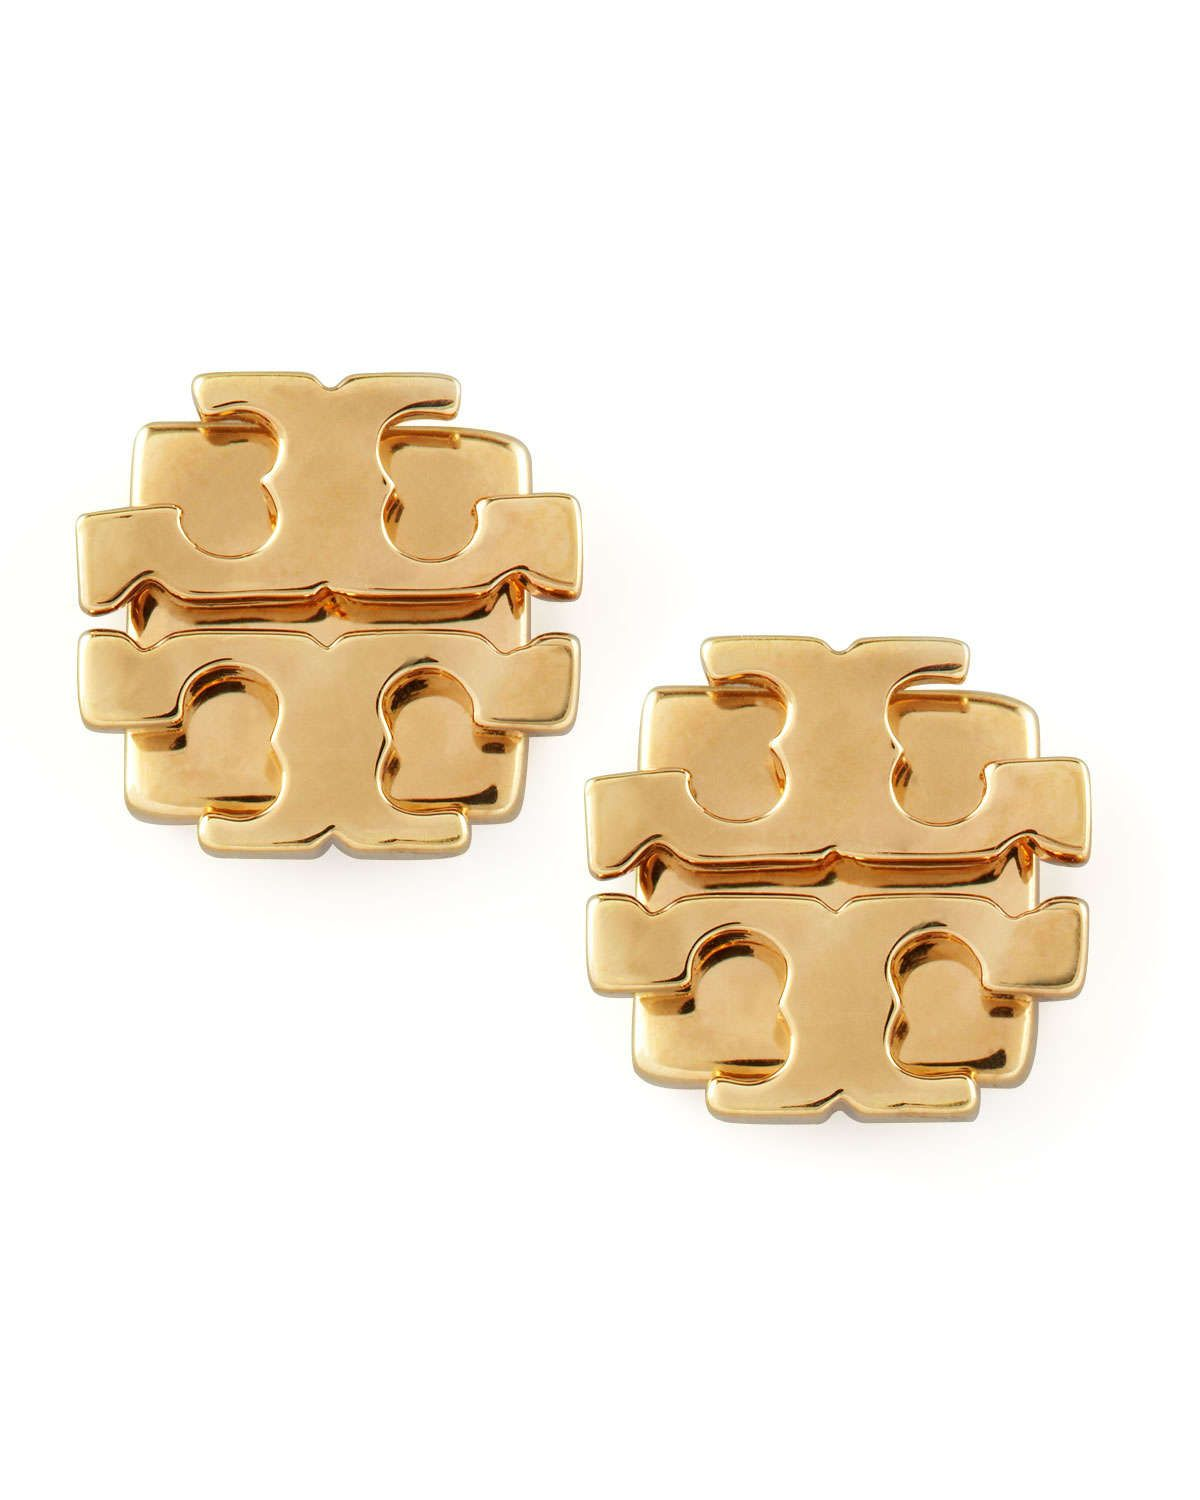 Tory Burch Small T Logo Stud Earrings Declare Your Devotion To By Framing Face With These Simple Signature Double